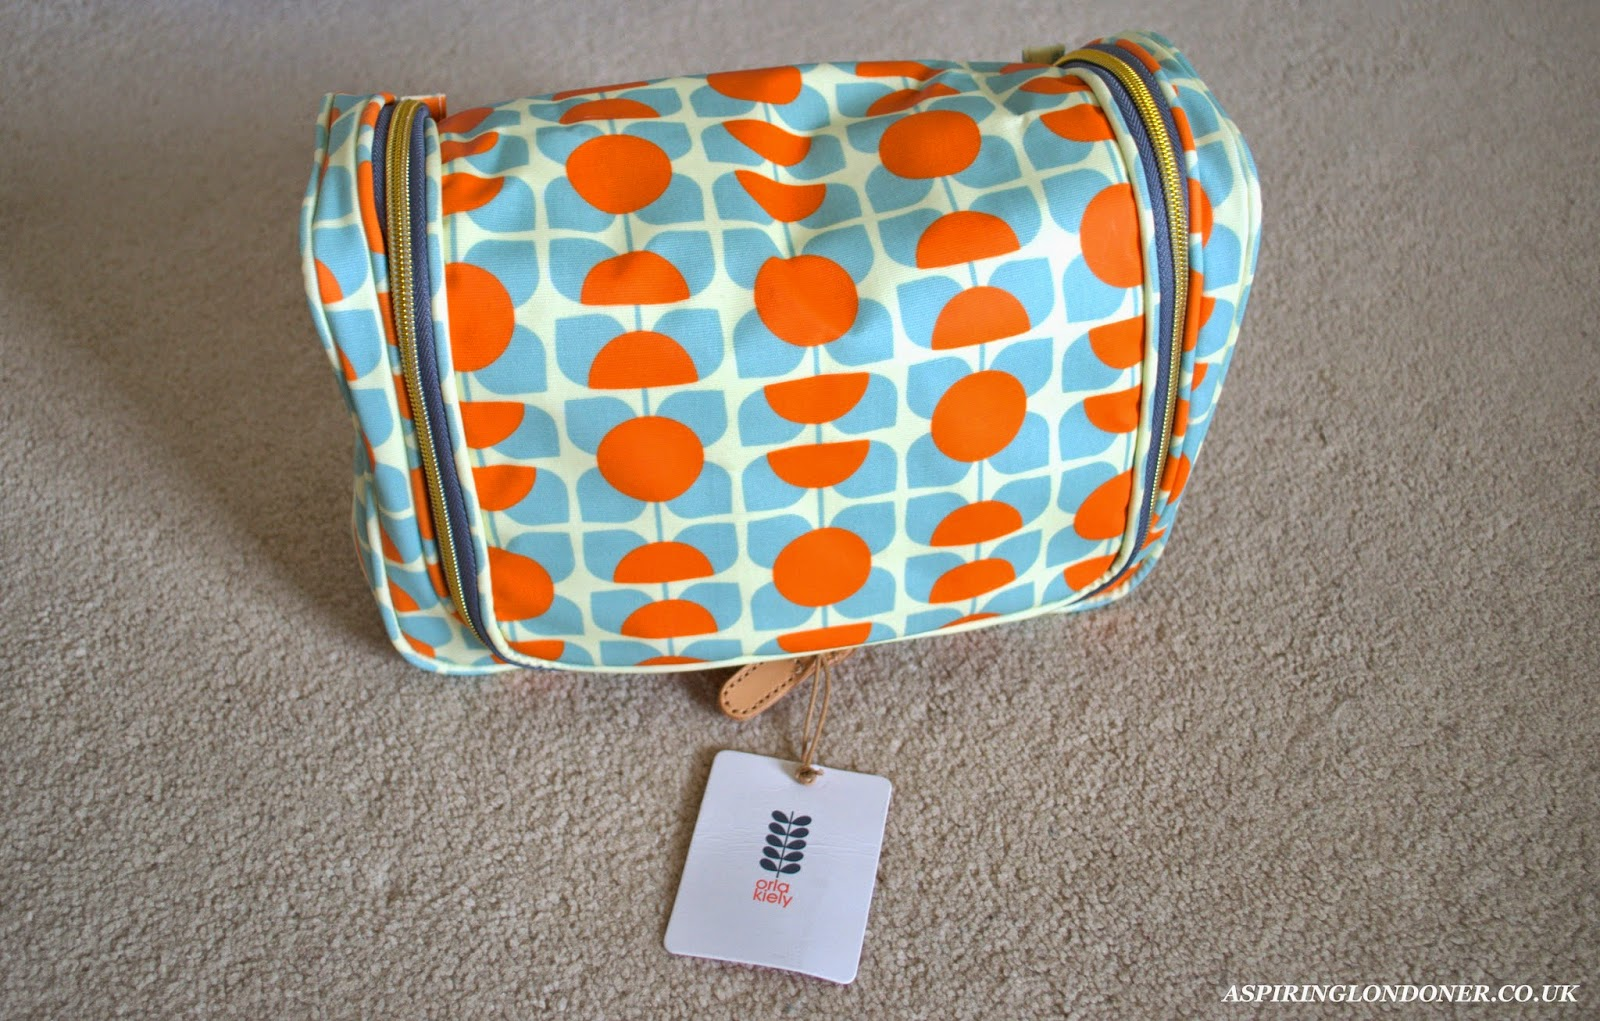 Orla Kiely Square Flower Orange & Blue Large Wash Bag Review - Aspiring Londoner